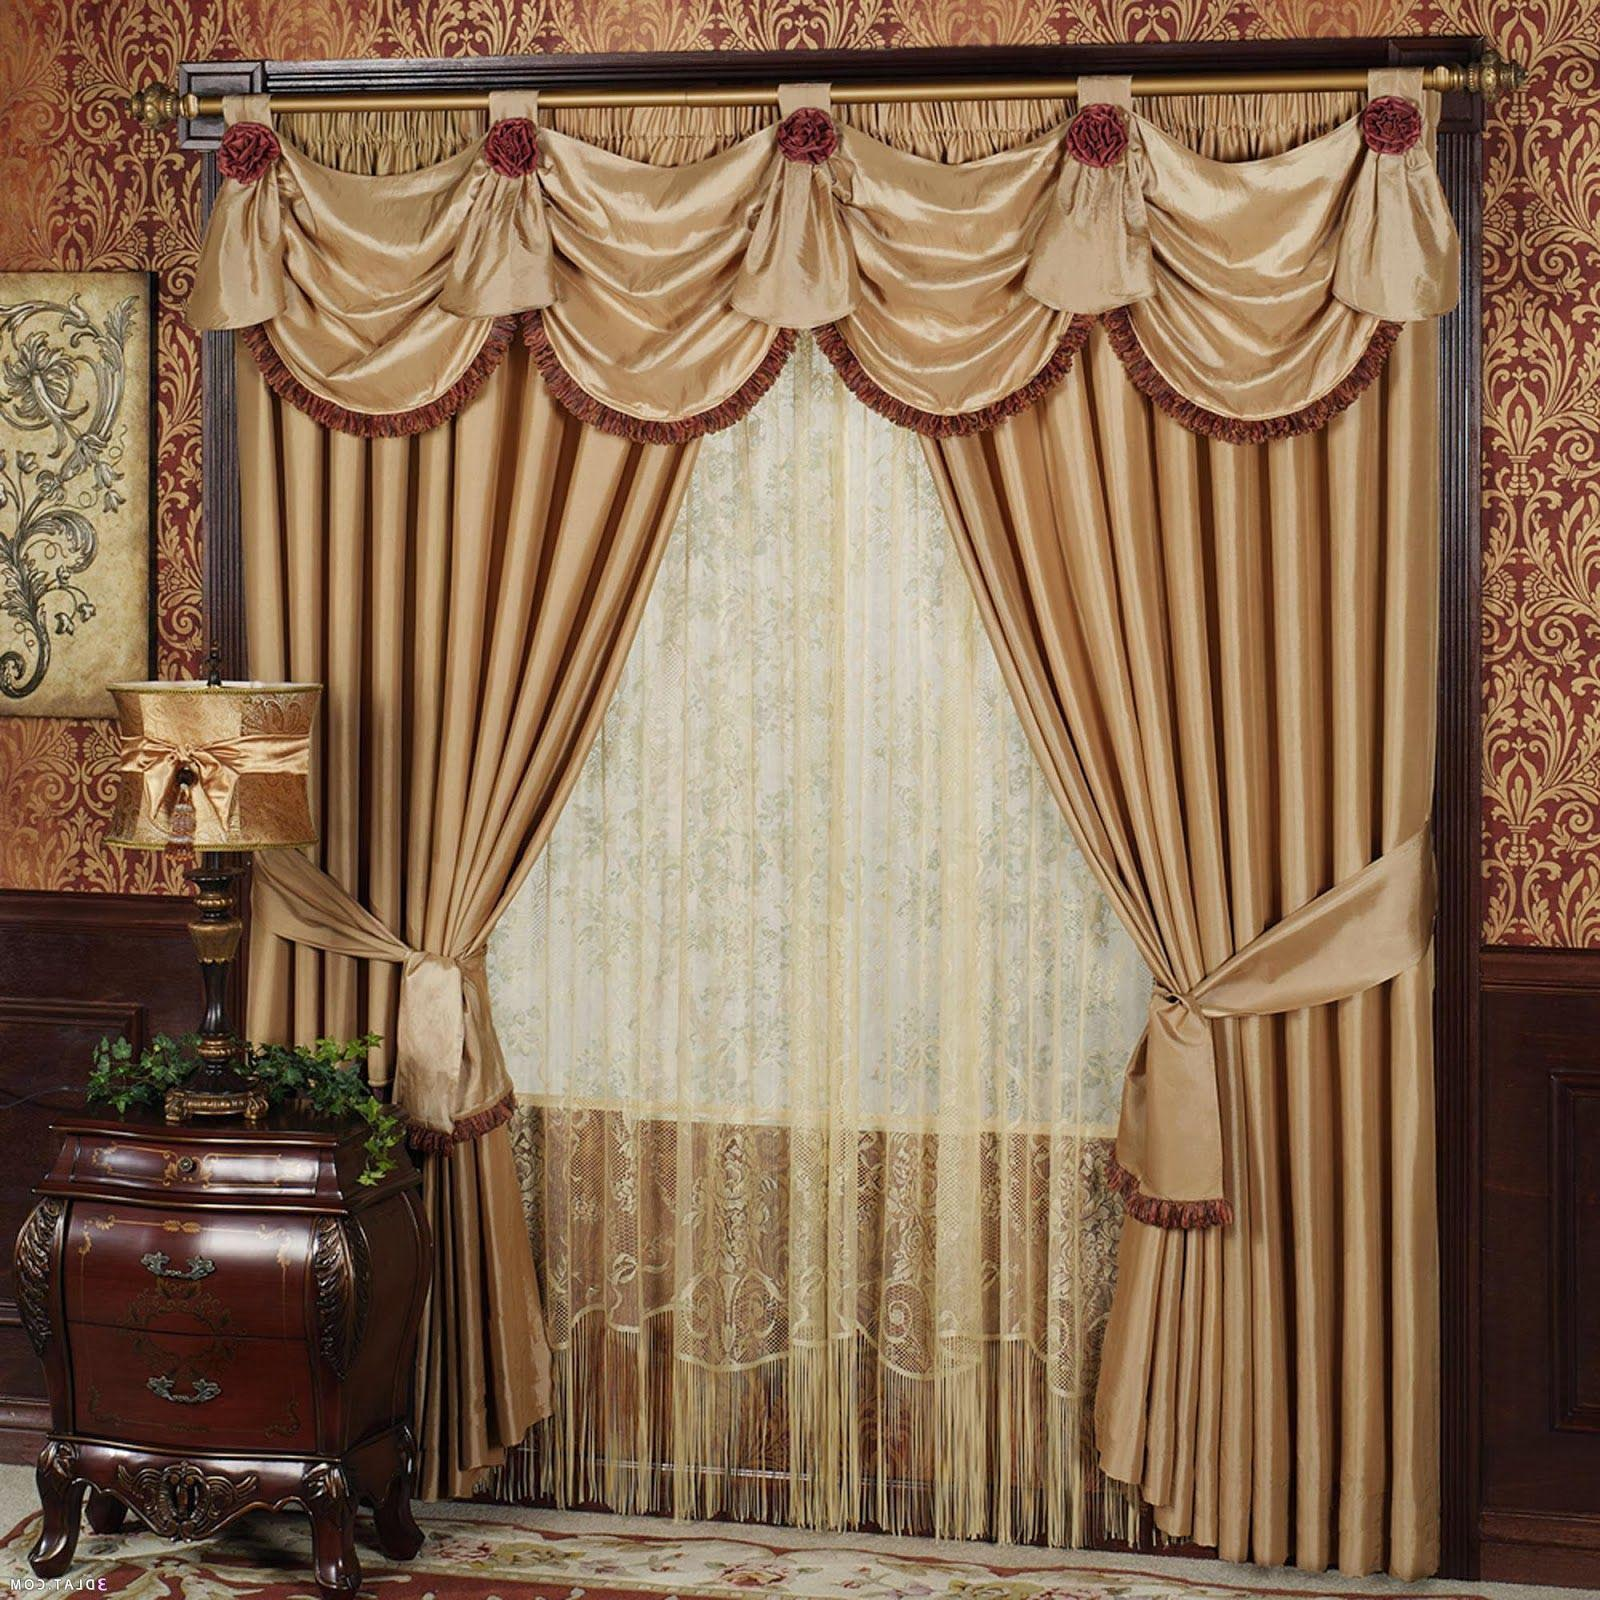 Living room drapes with valances window treatments for Curtains and drapes for bedroom ideas